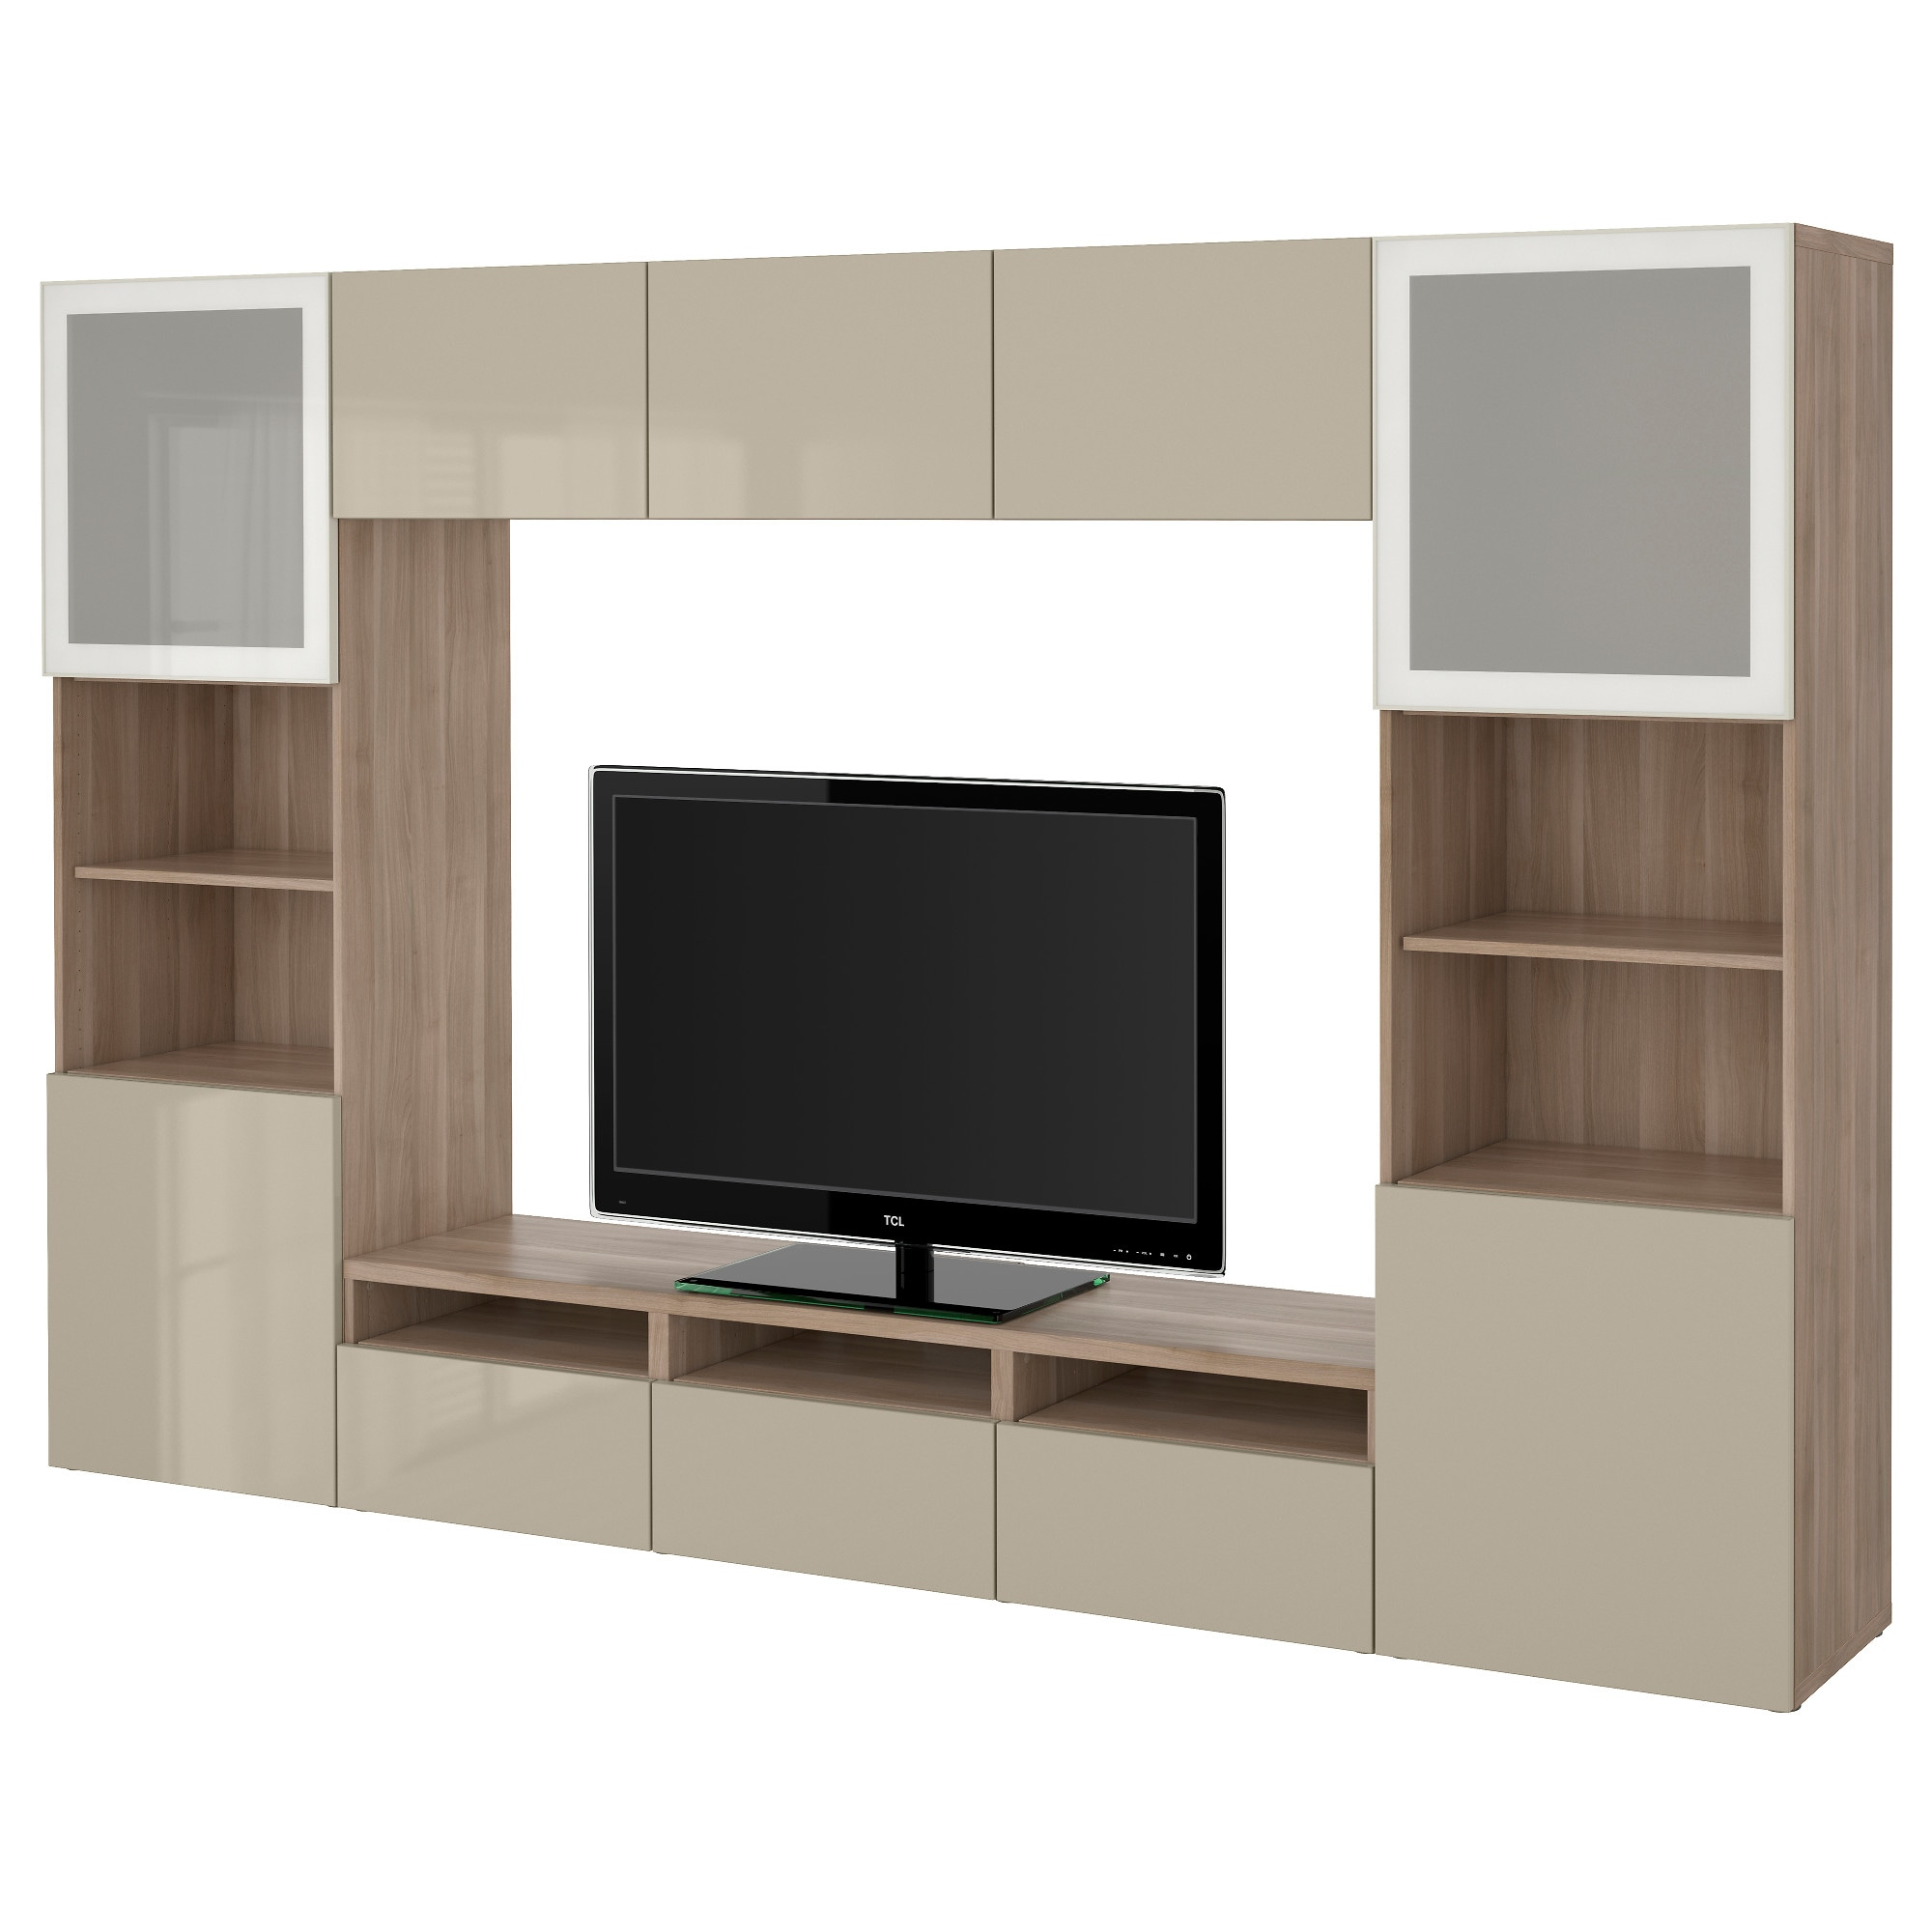 Ikea besta best livingroom storage system ikea ikea for Meuble tv armoire